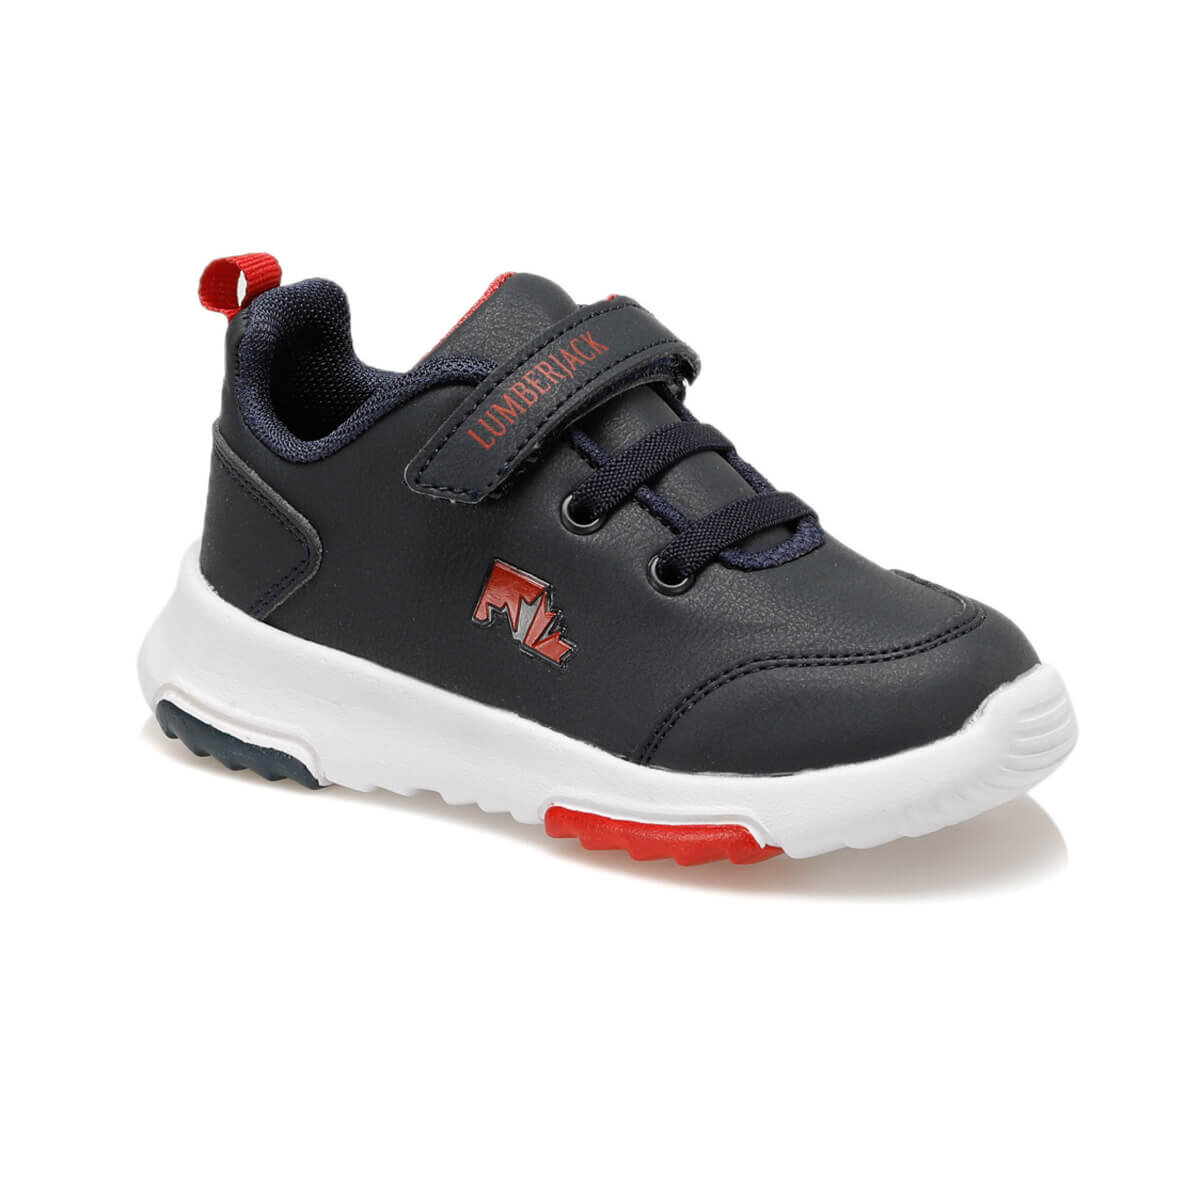 FLO THOR 9PR Navy Blue Male Child Hiking Shoes LUMBERJACK